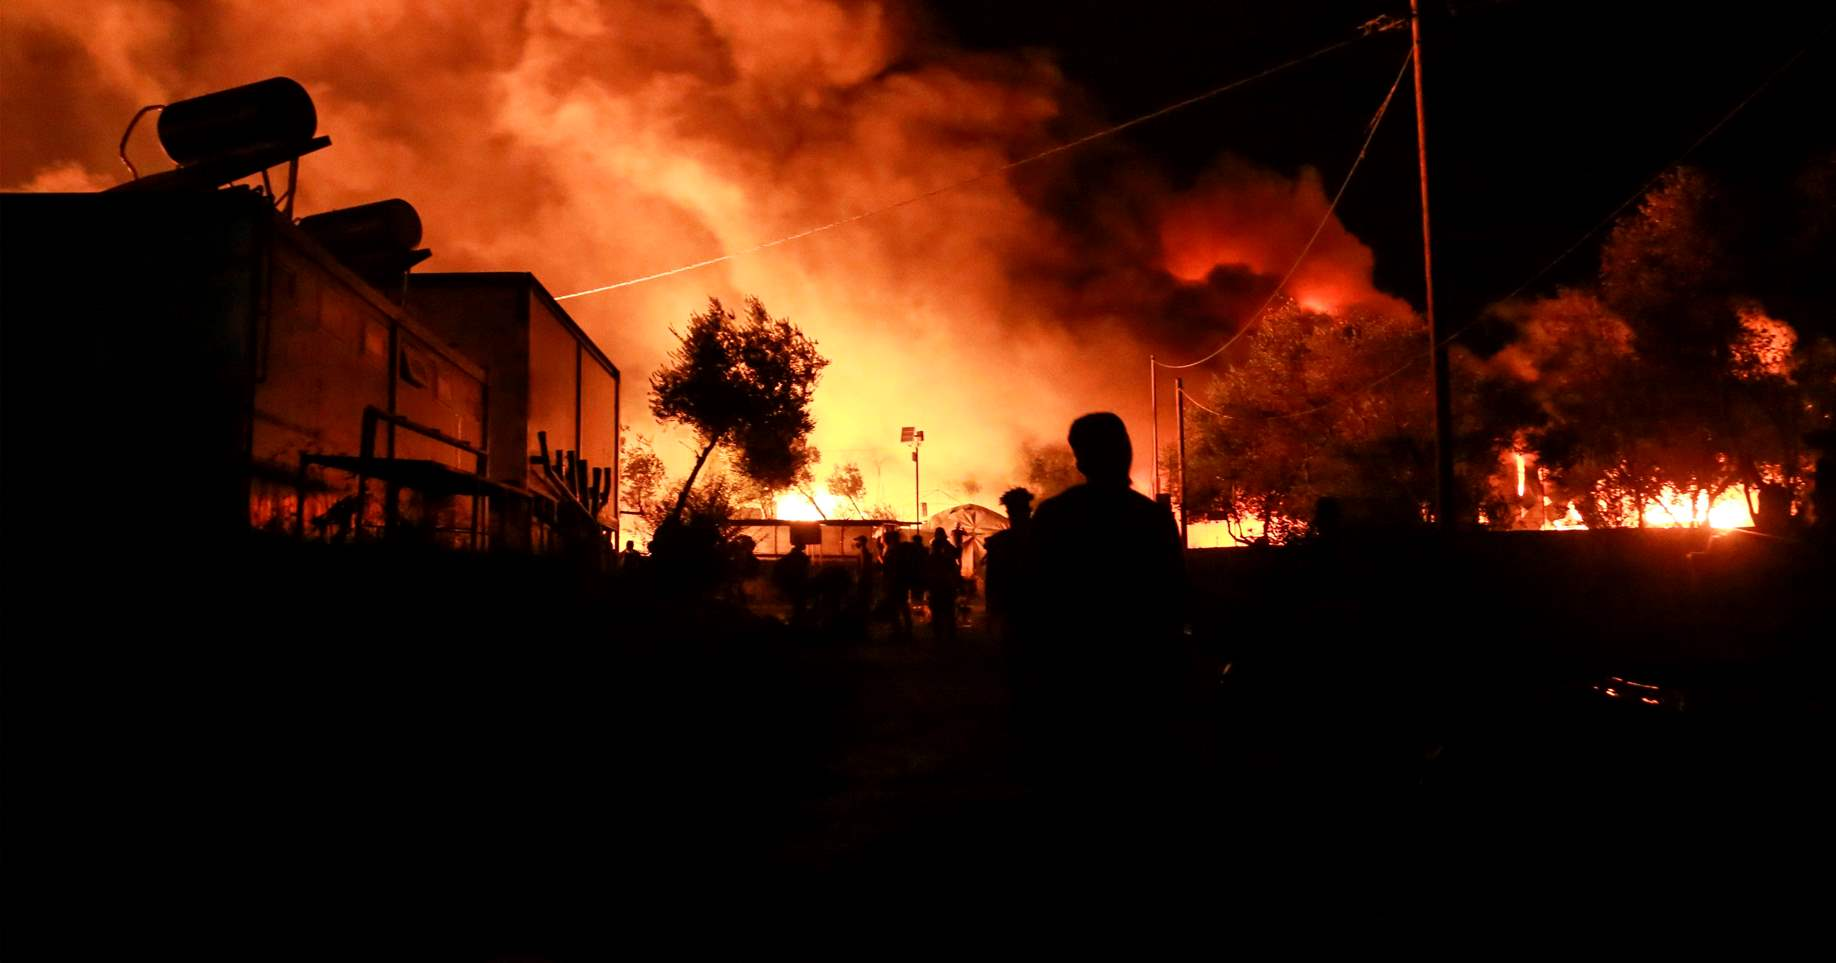 Greece/EU: Fire destroys Moria leaving 12,500 people without shelter